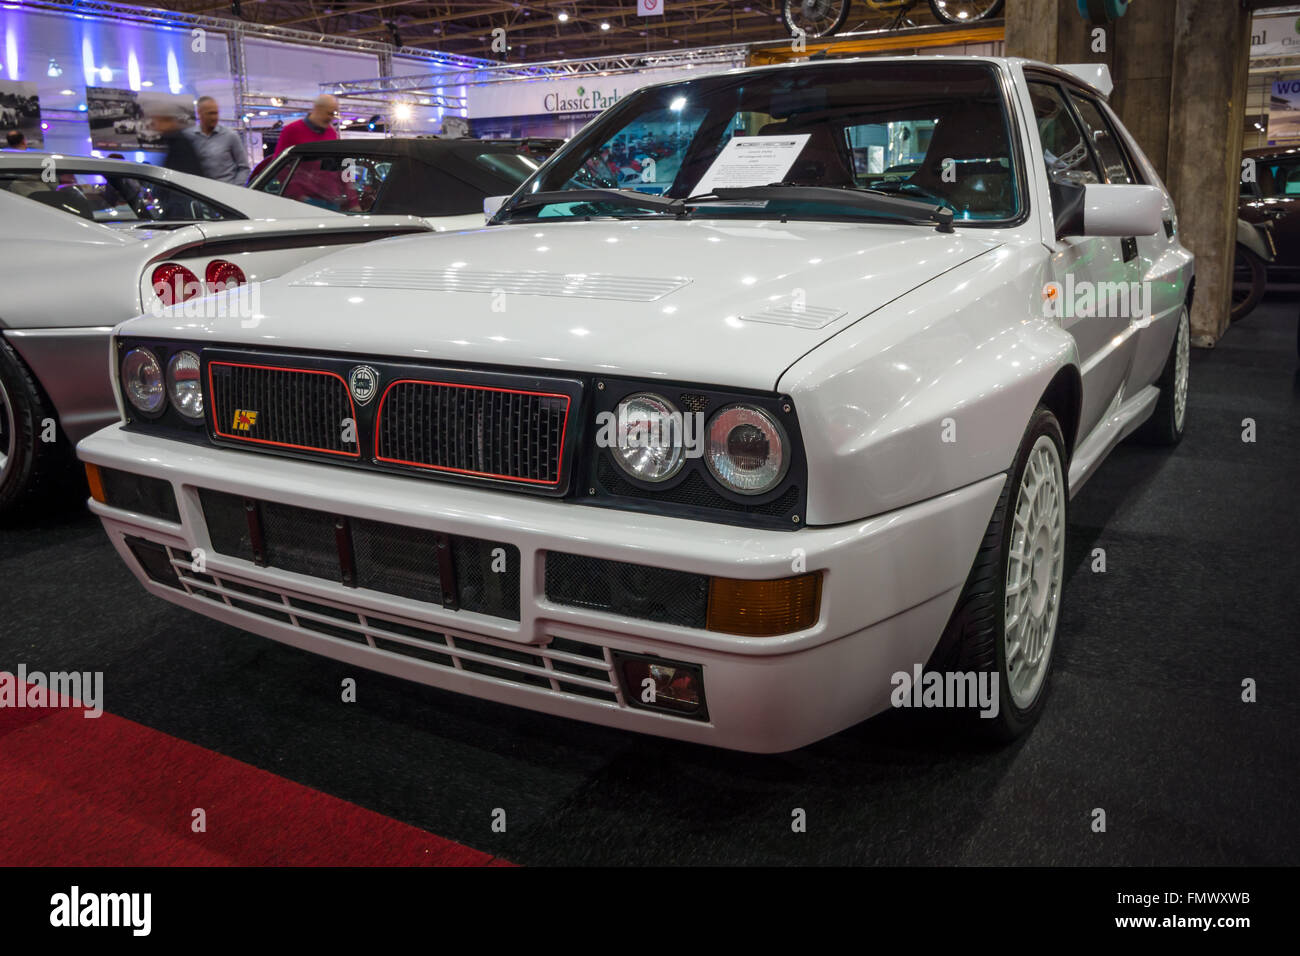 https://c8.alamy.com/comp/FMWXWB/sports-car-lancia-delta-hf-integrale-16v-evoluzione-ii-1993-FMWXWB.jpg